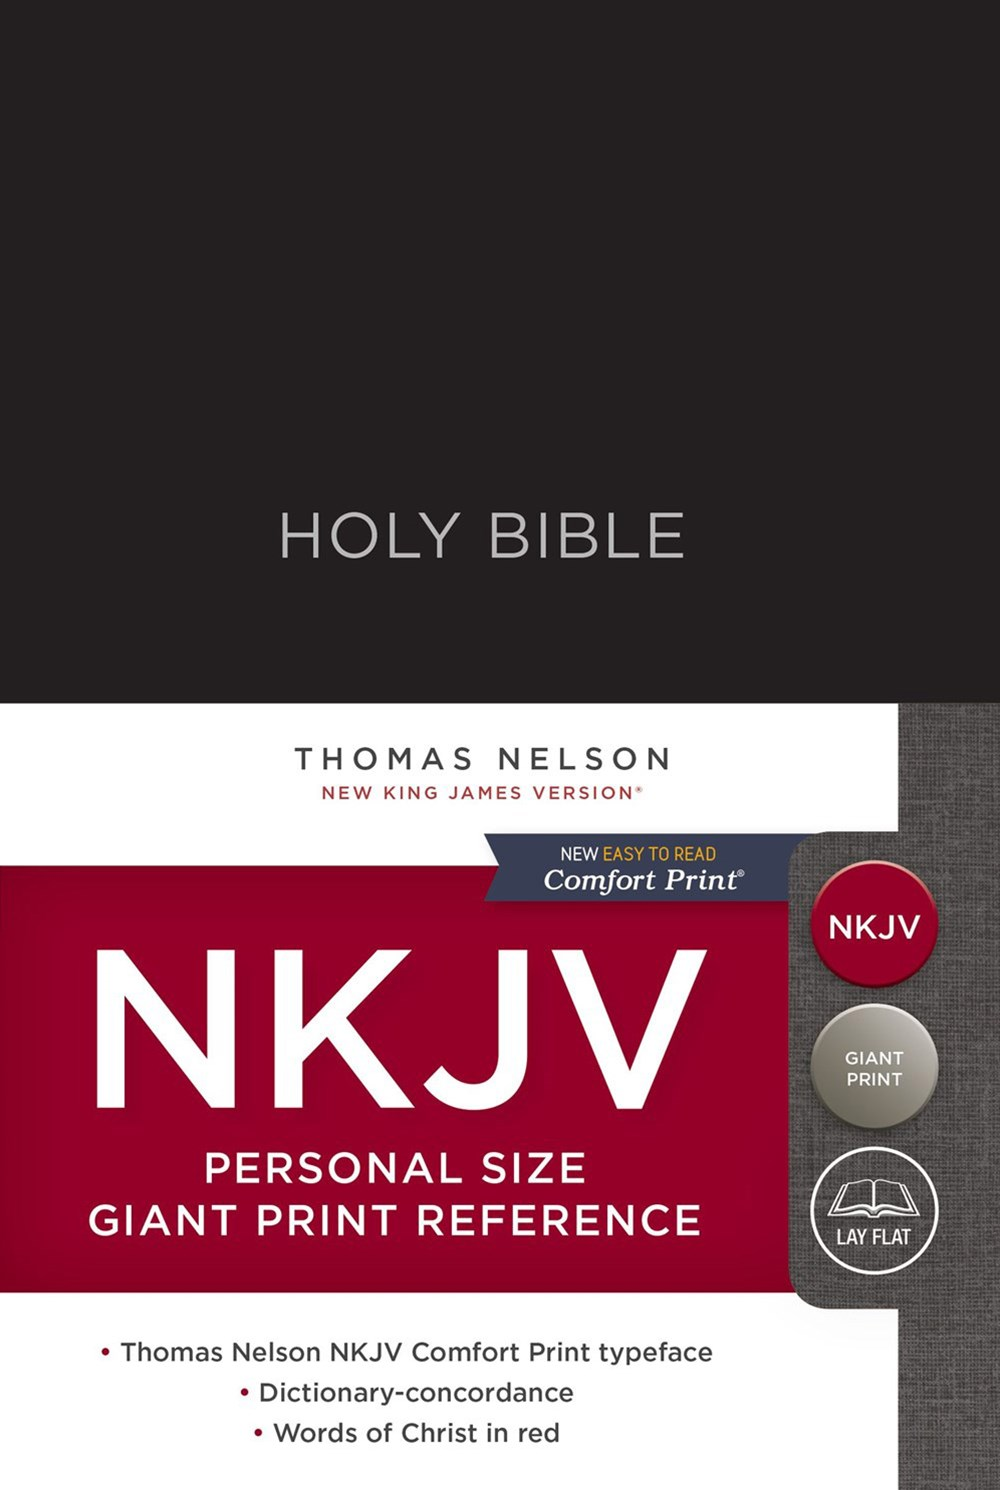 NKJV Personal Size Reference Bible Red Letter Edition [Giant Print, Black]